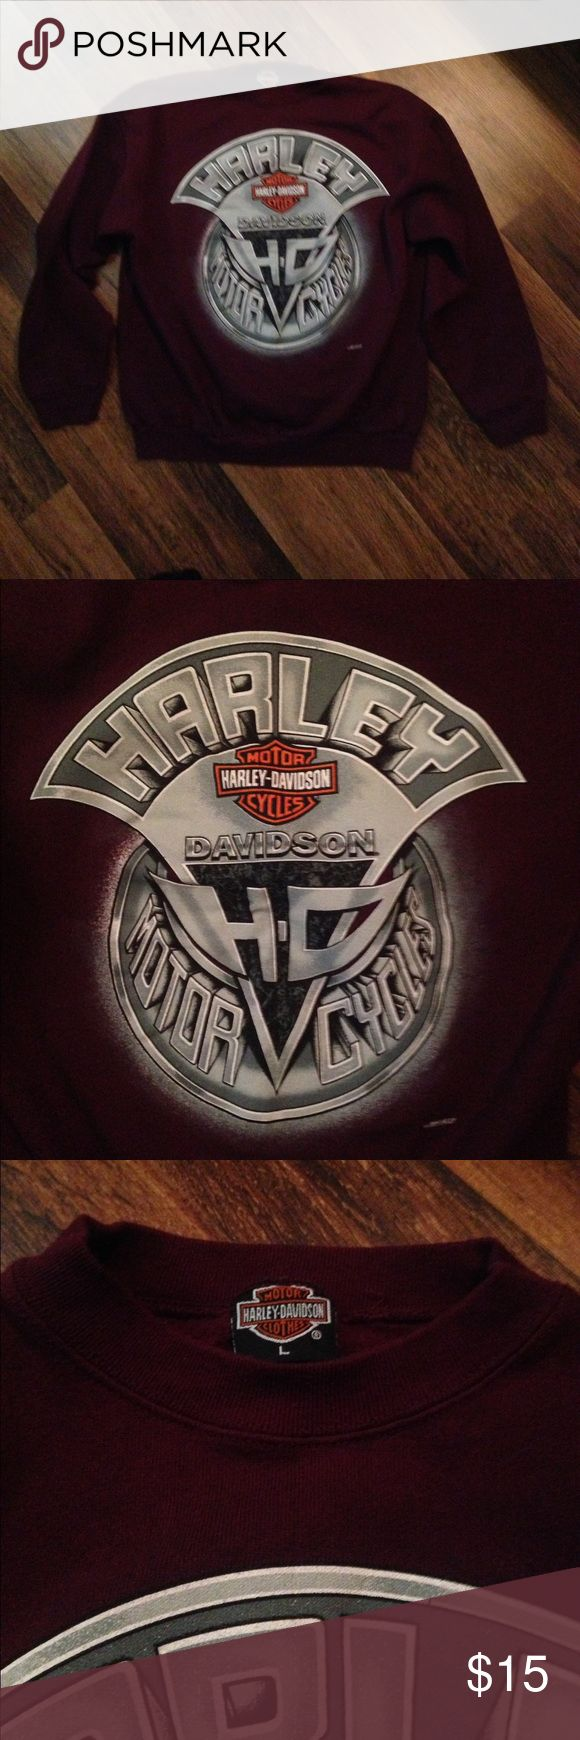 "Harley-Davidson Sweatshirt. Burgundy HD Sweatshirt. Worn. Soft. Will only get softer with wash, the way we like them. 22"" armpit to armpit. Approximately 26"" long. Harley-Davidson Tops Sweatshirts & Hoodies"